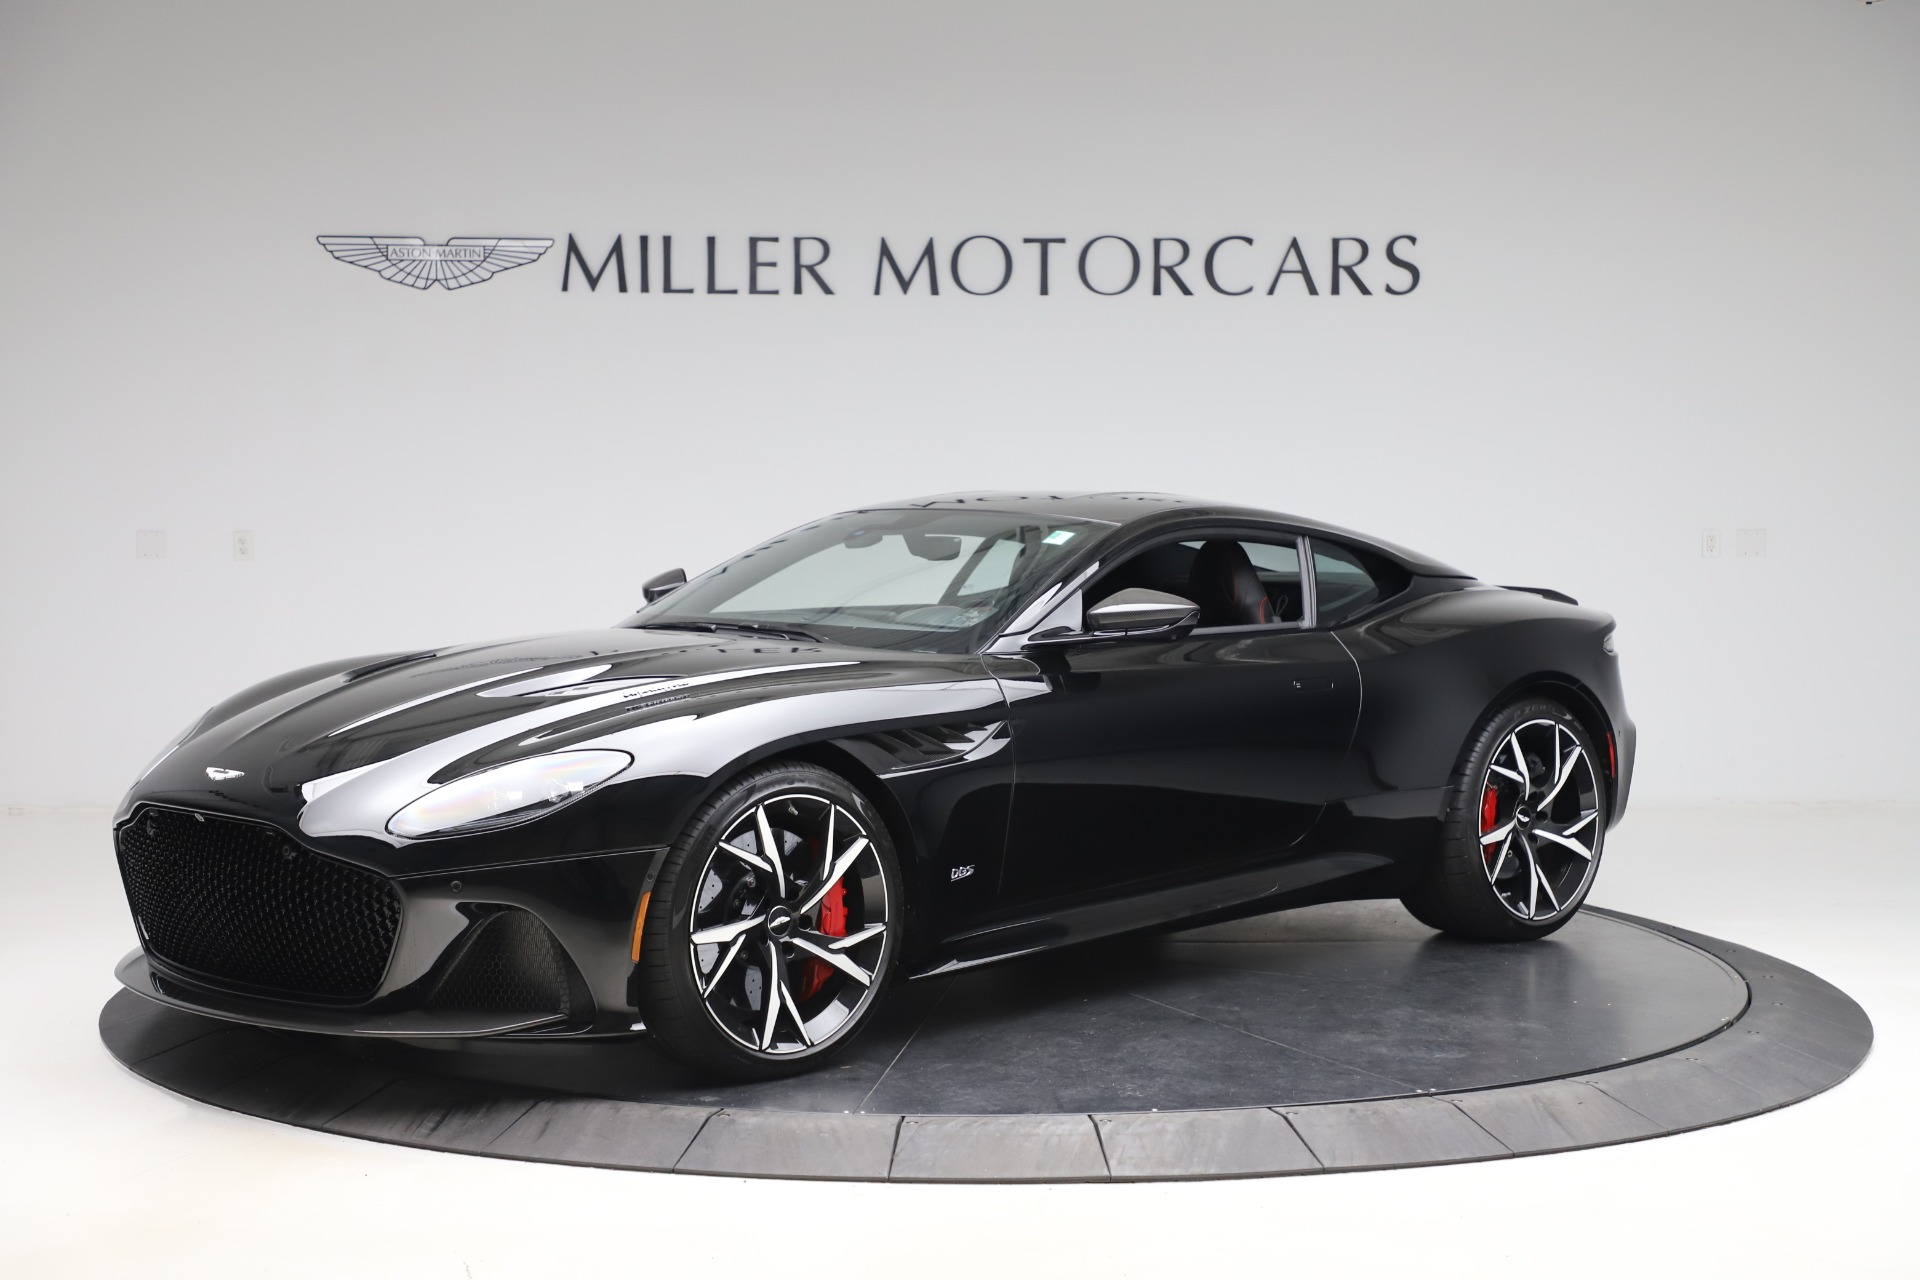 Pre Owned 2019 Aston Martin Dbs Superleggera For Sale Special Pricing Mclaren Greenwich Stock 7834